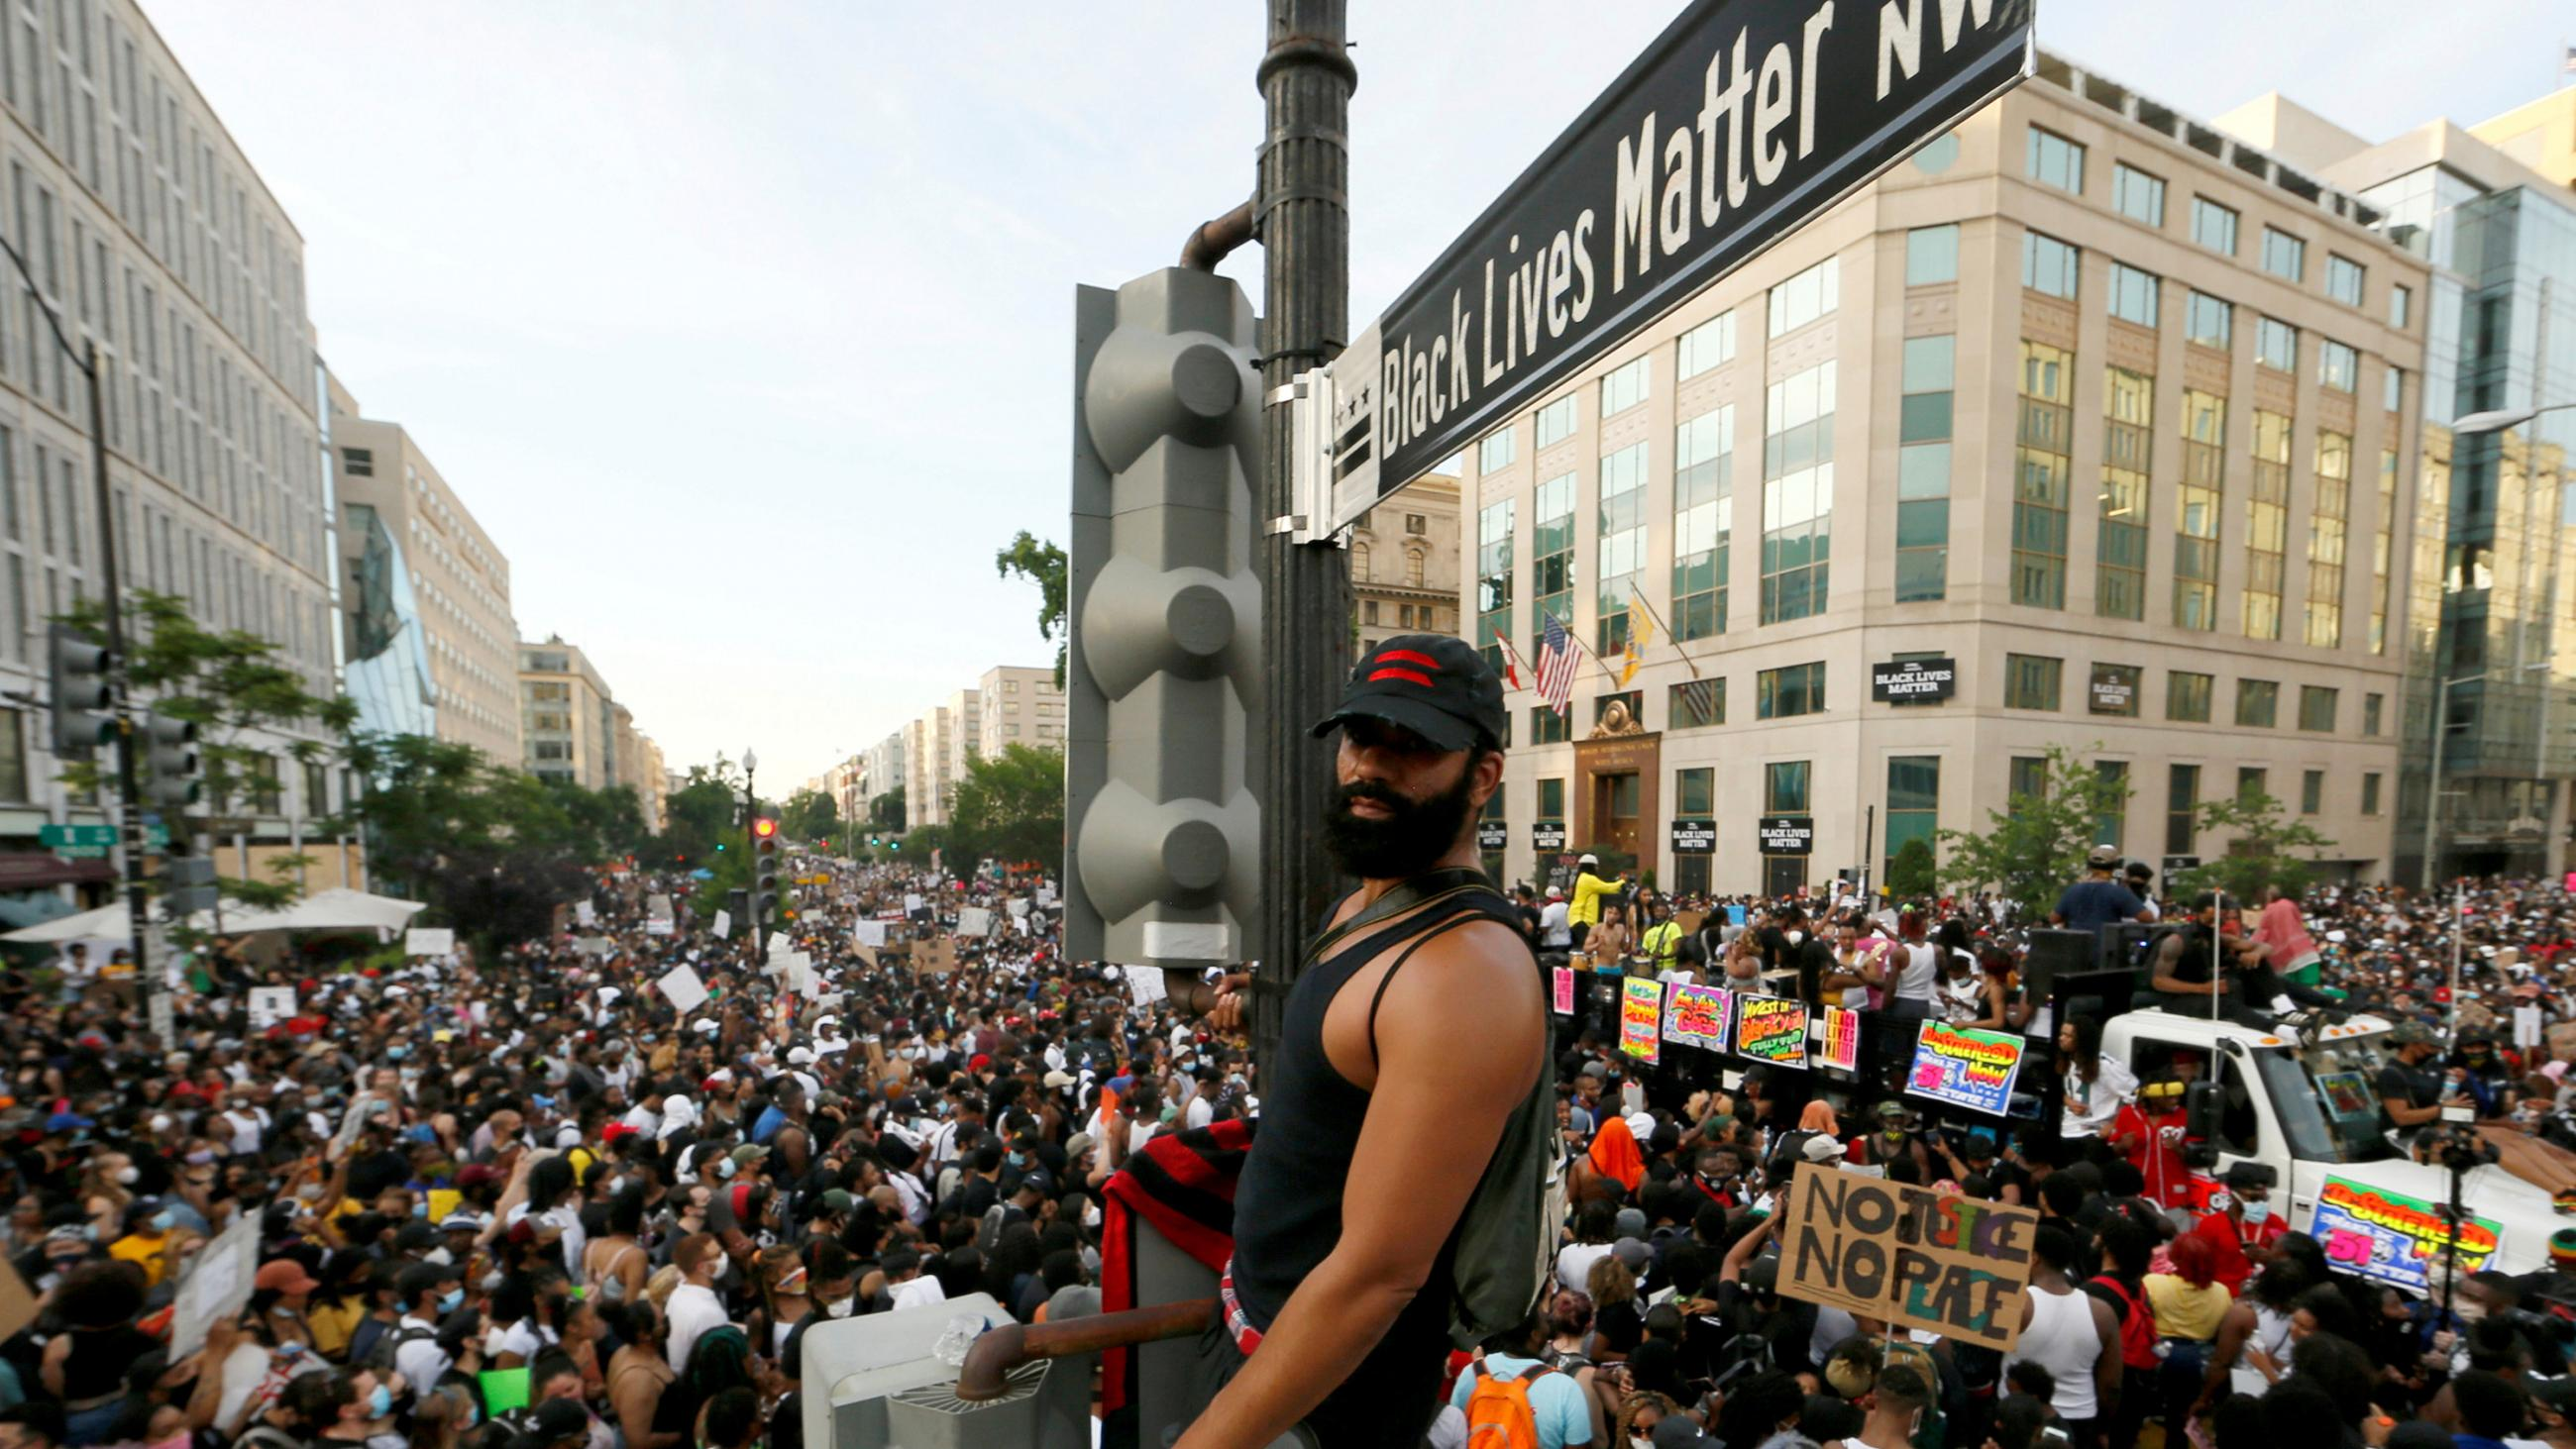 The photo shows the protestor standing on the light post above a massive crowd.